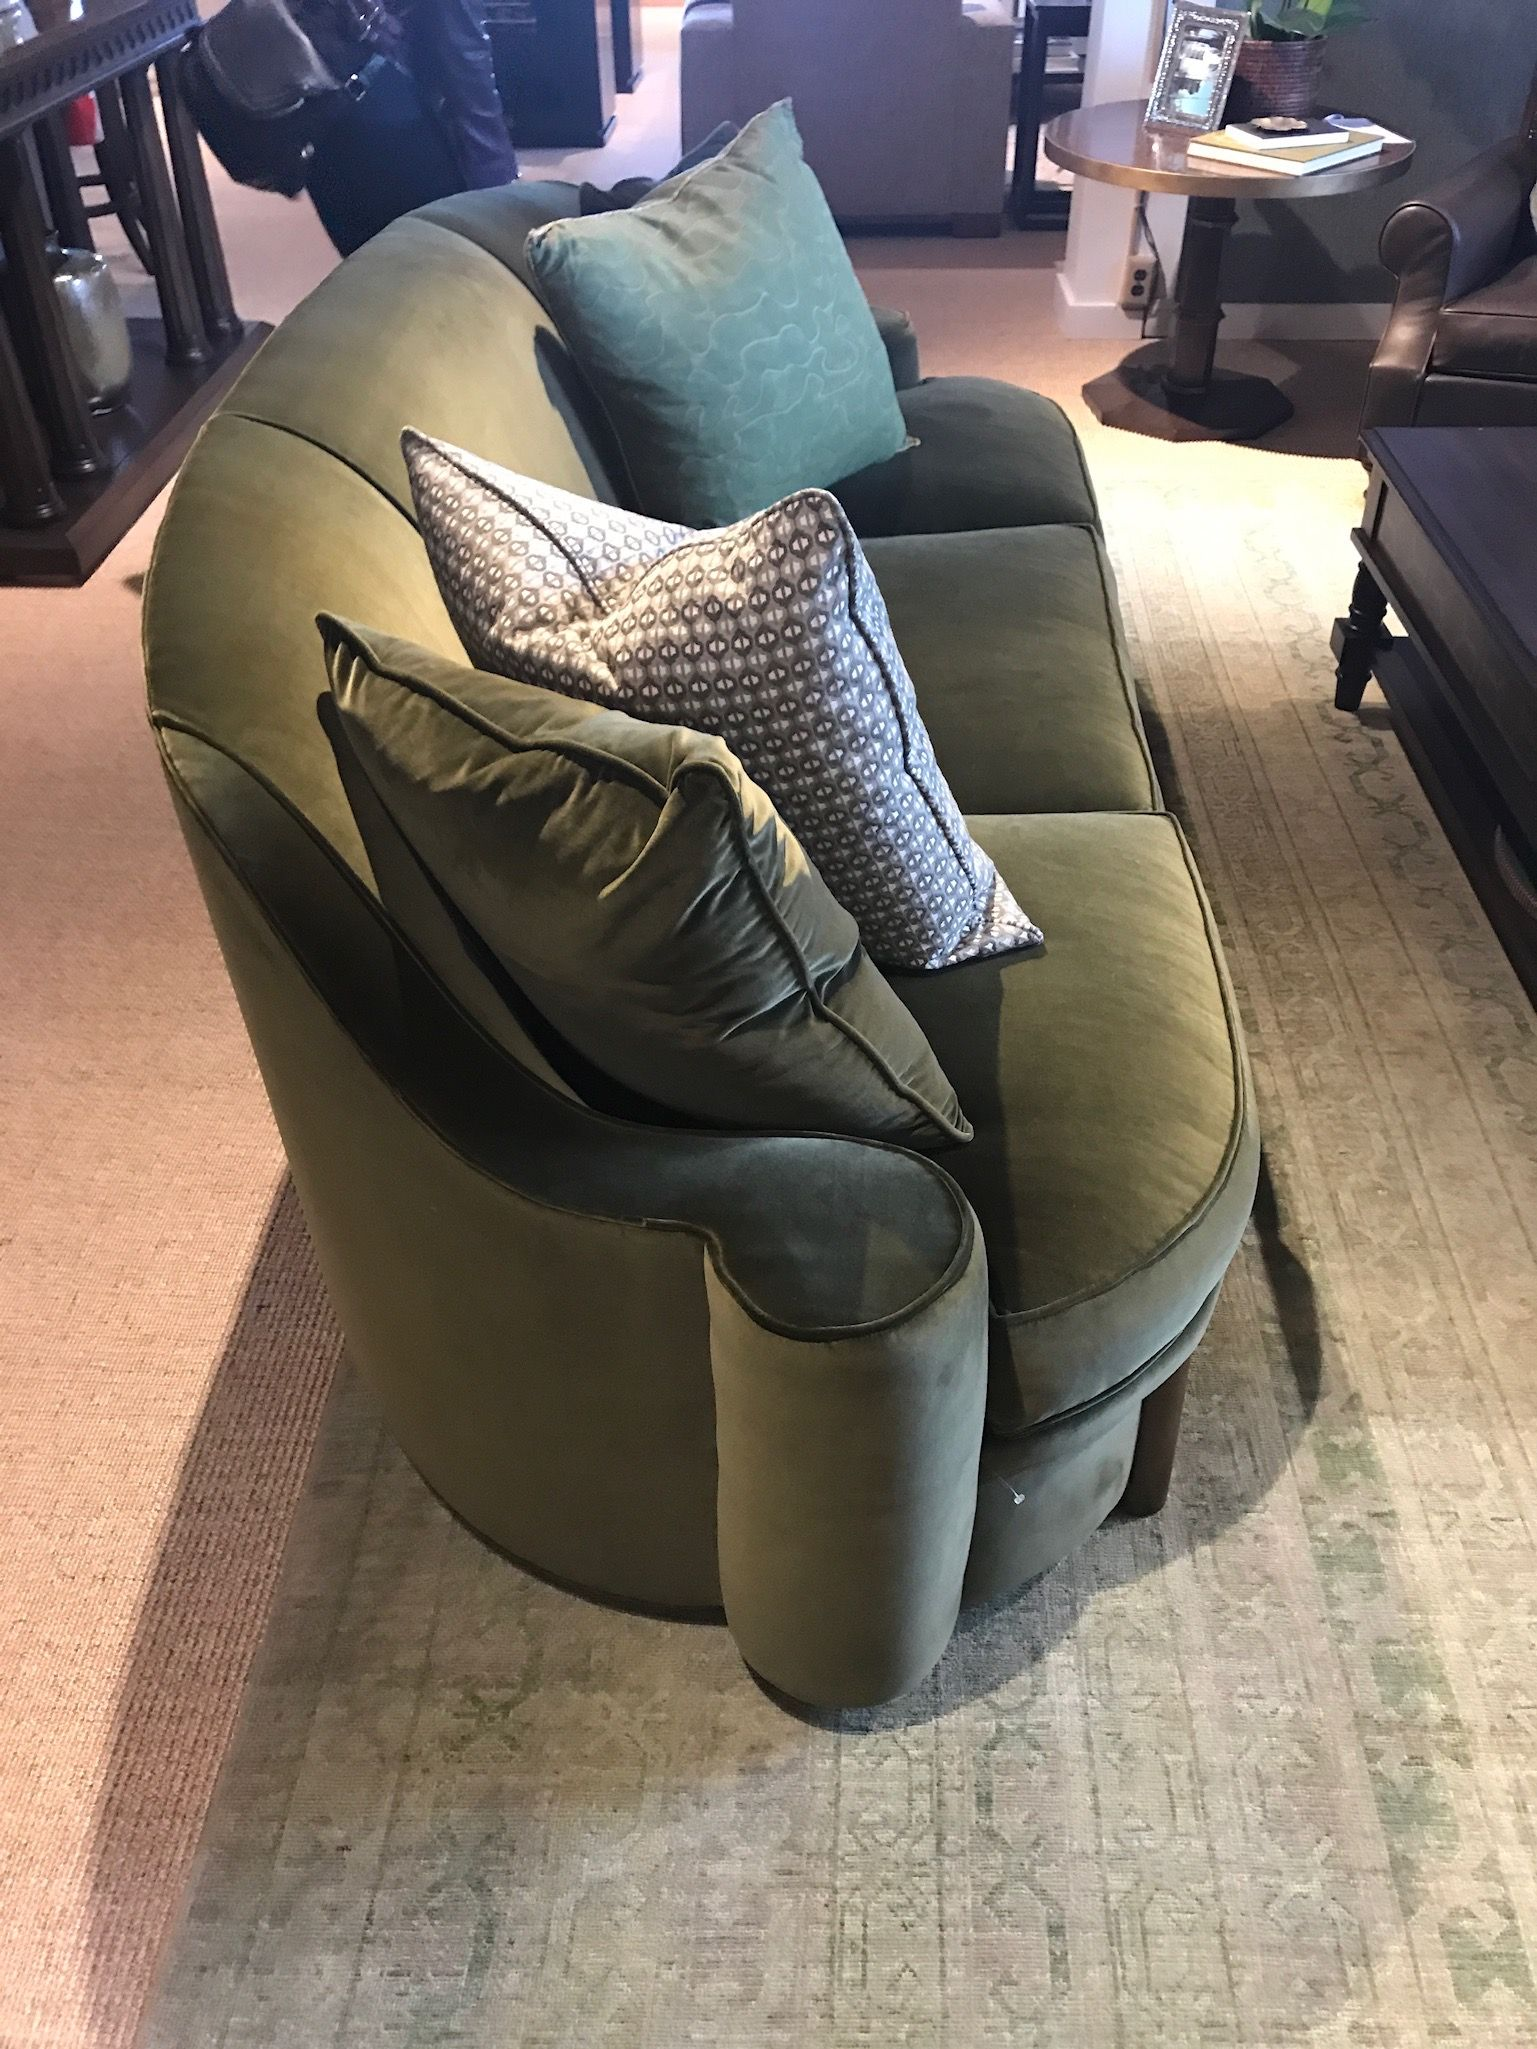 Ordinaire Athena Accent Sofa By David Phoenix For Hickory Chair Showroom: 314    Market Square,